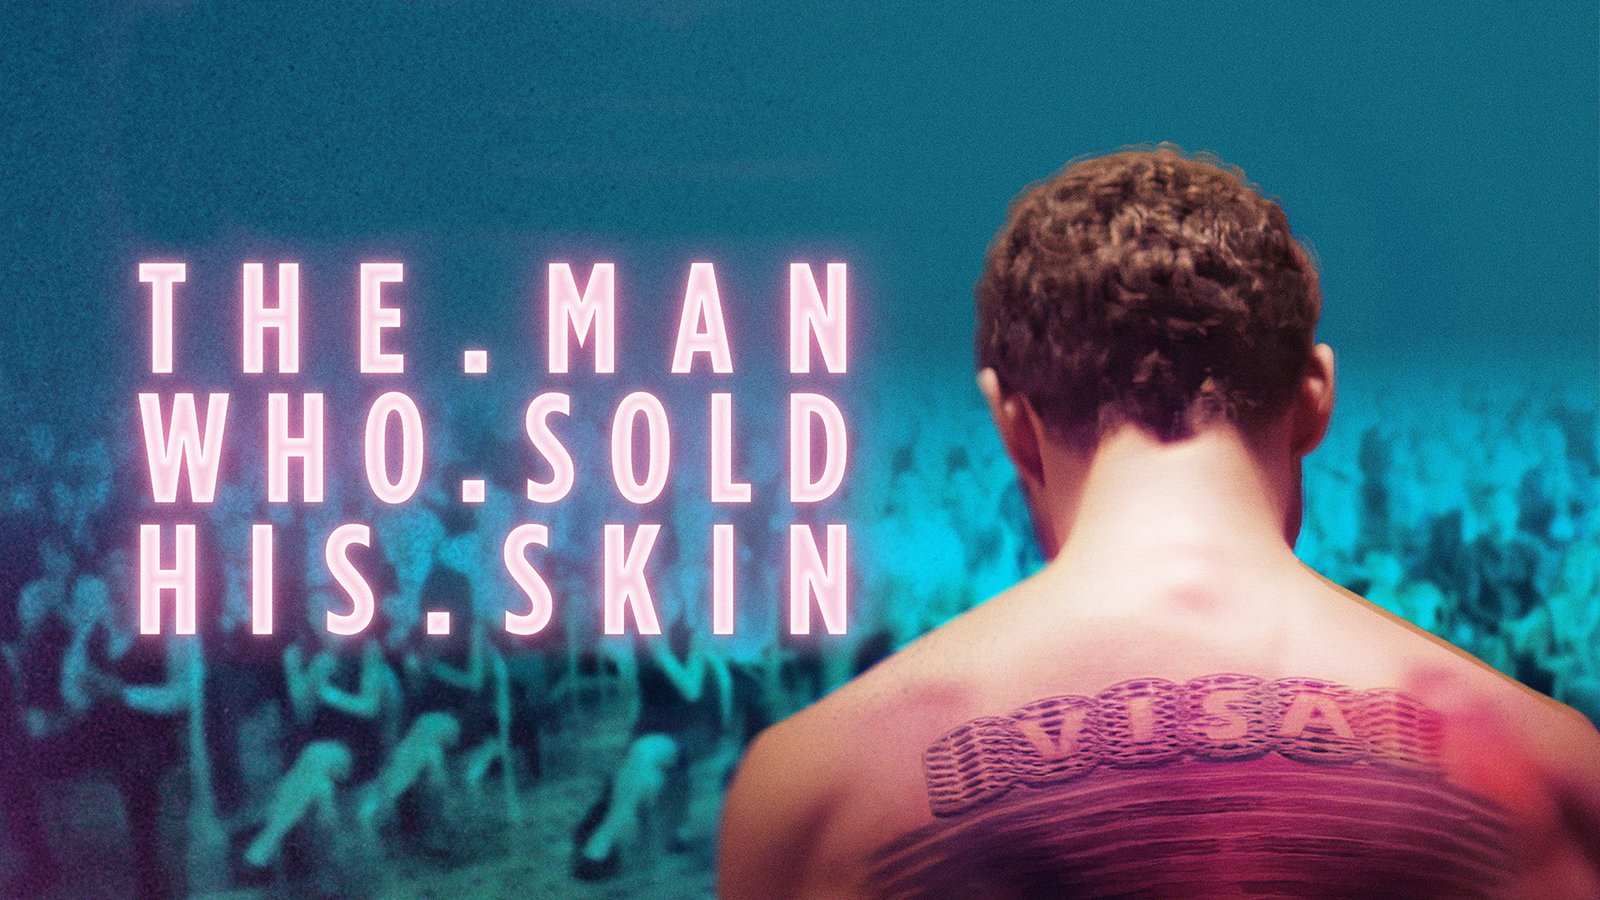 The Man Who Sold His Skin